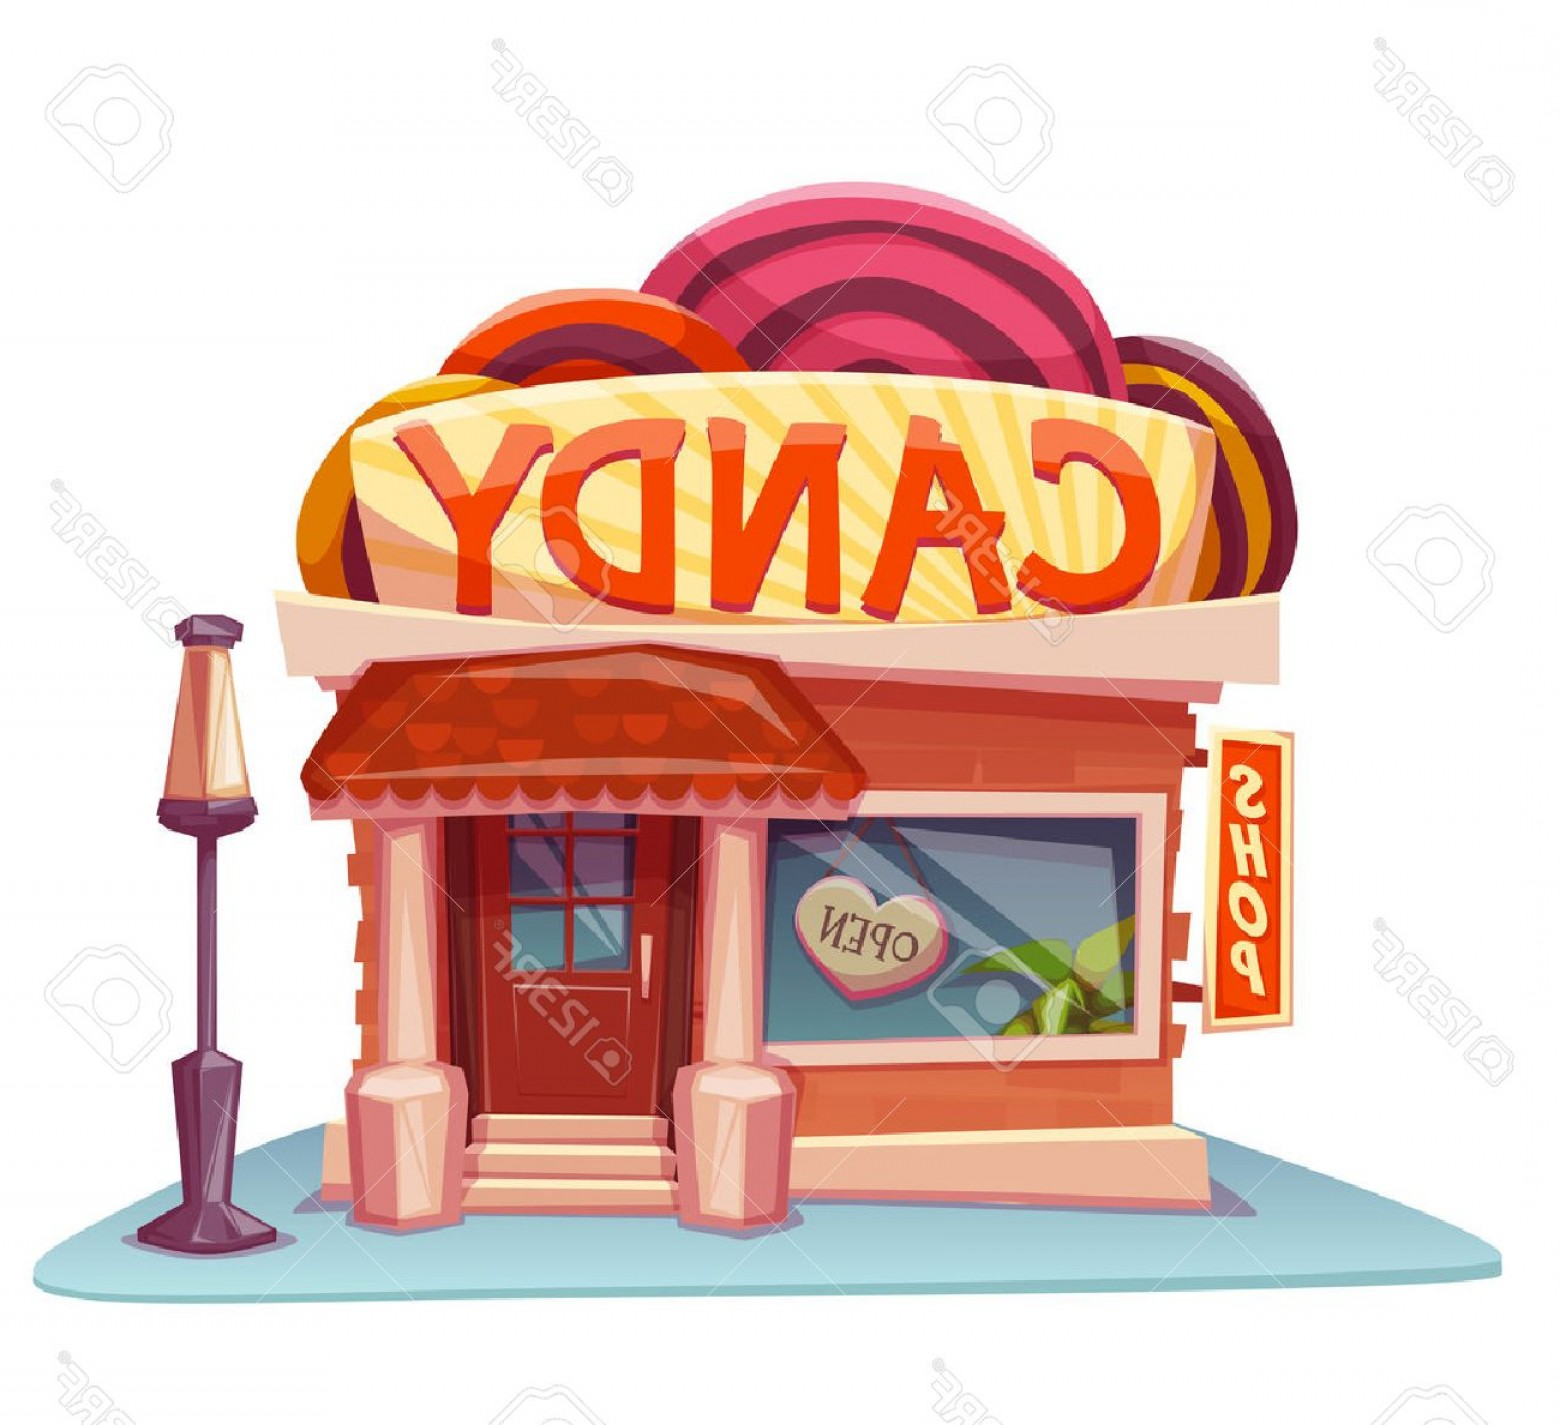 Candy Shop Vector: Photostock Vector Candy Shop Building With Bright Banner Vector Illustration